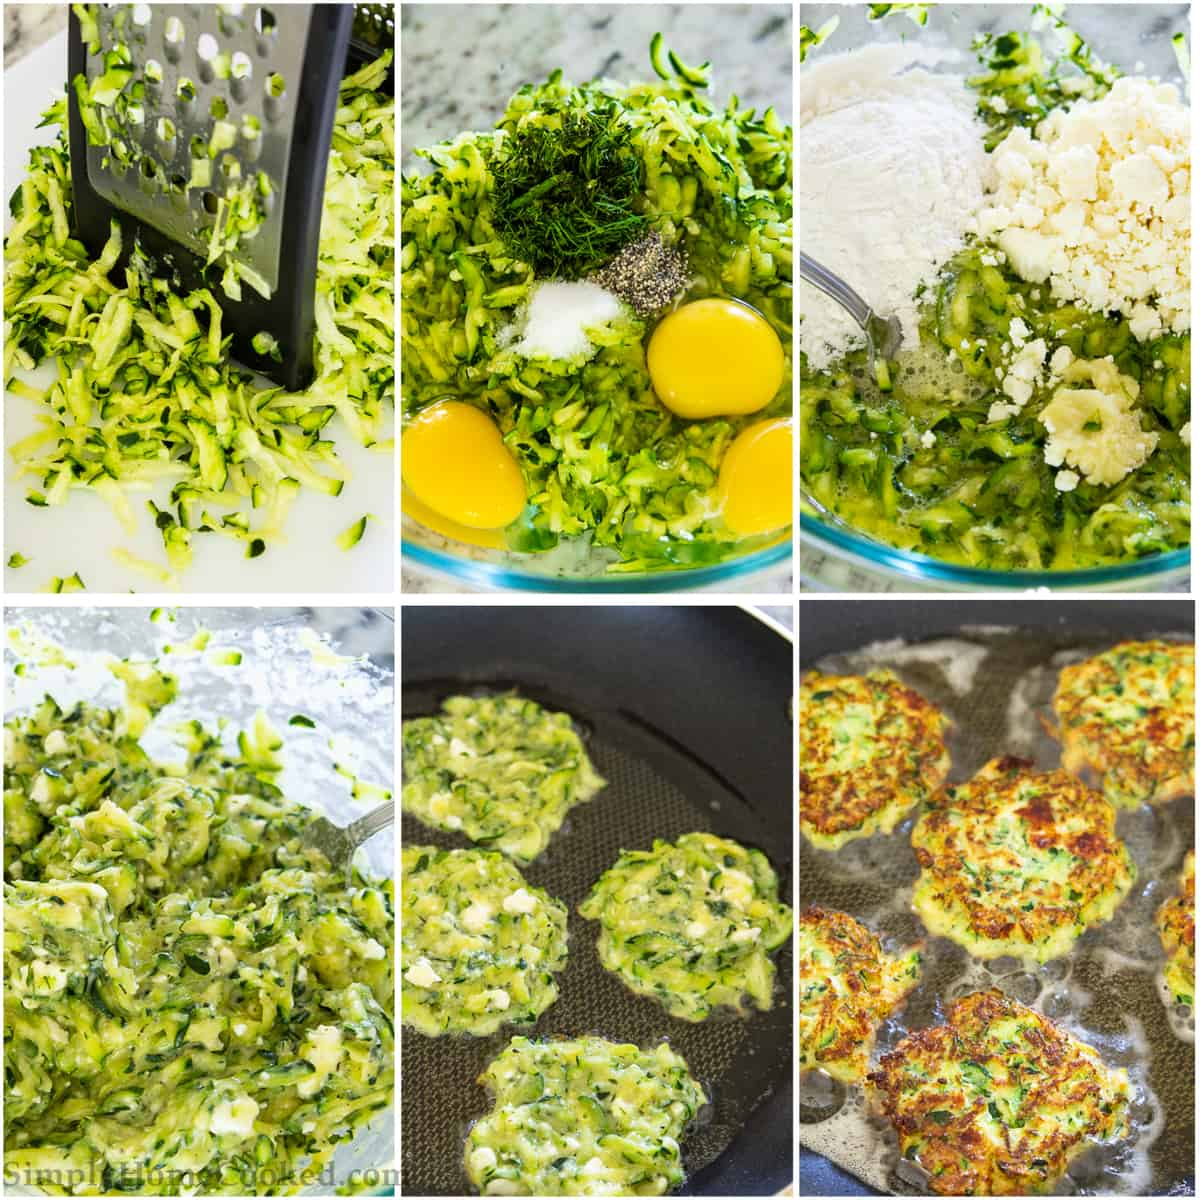 detailed step by step photos on how to make easy zucchini fritters using a box grater, egg, feta cheese, garlic, flour, and shredded zucchini